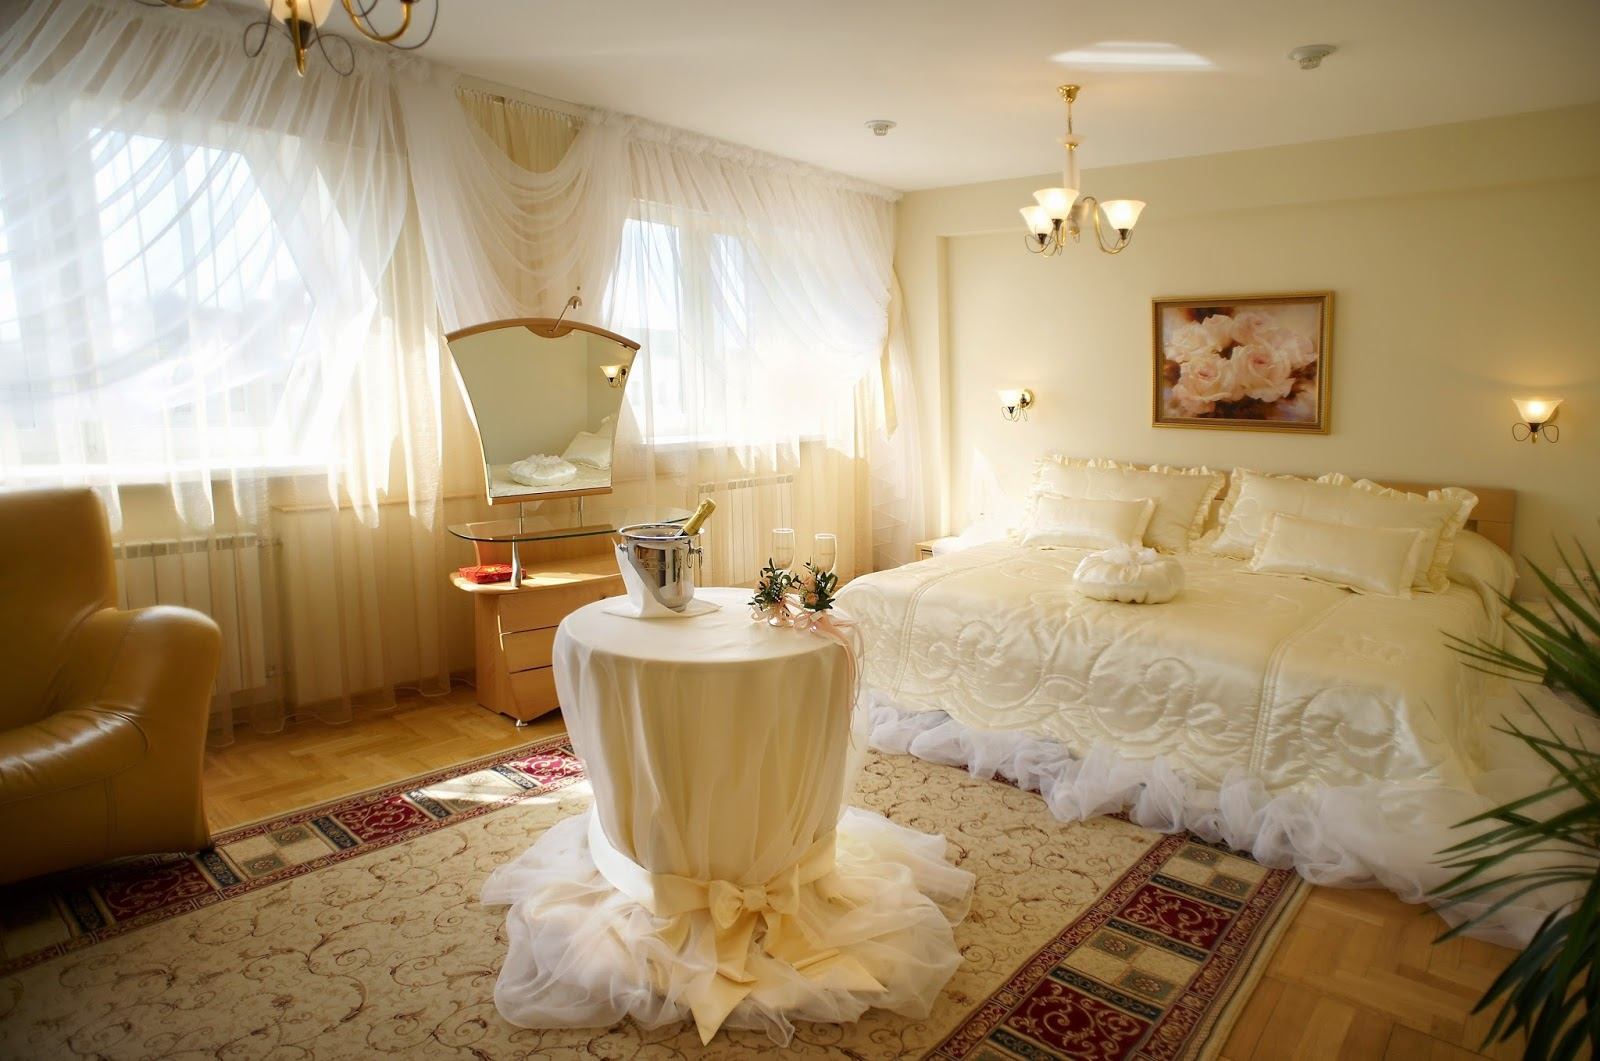 Romantic bedroom ideas for married couples for House interior design romantic bedroom